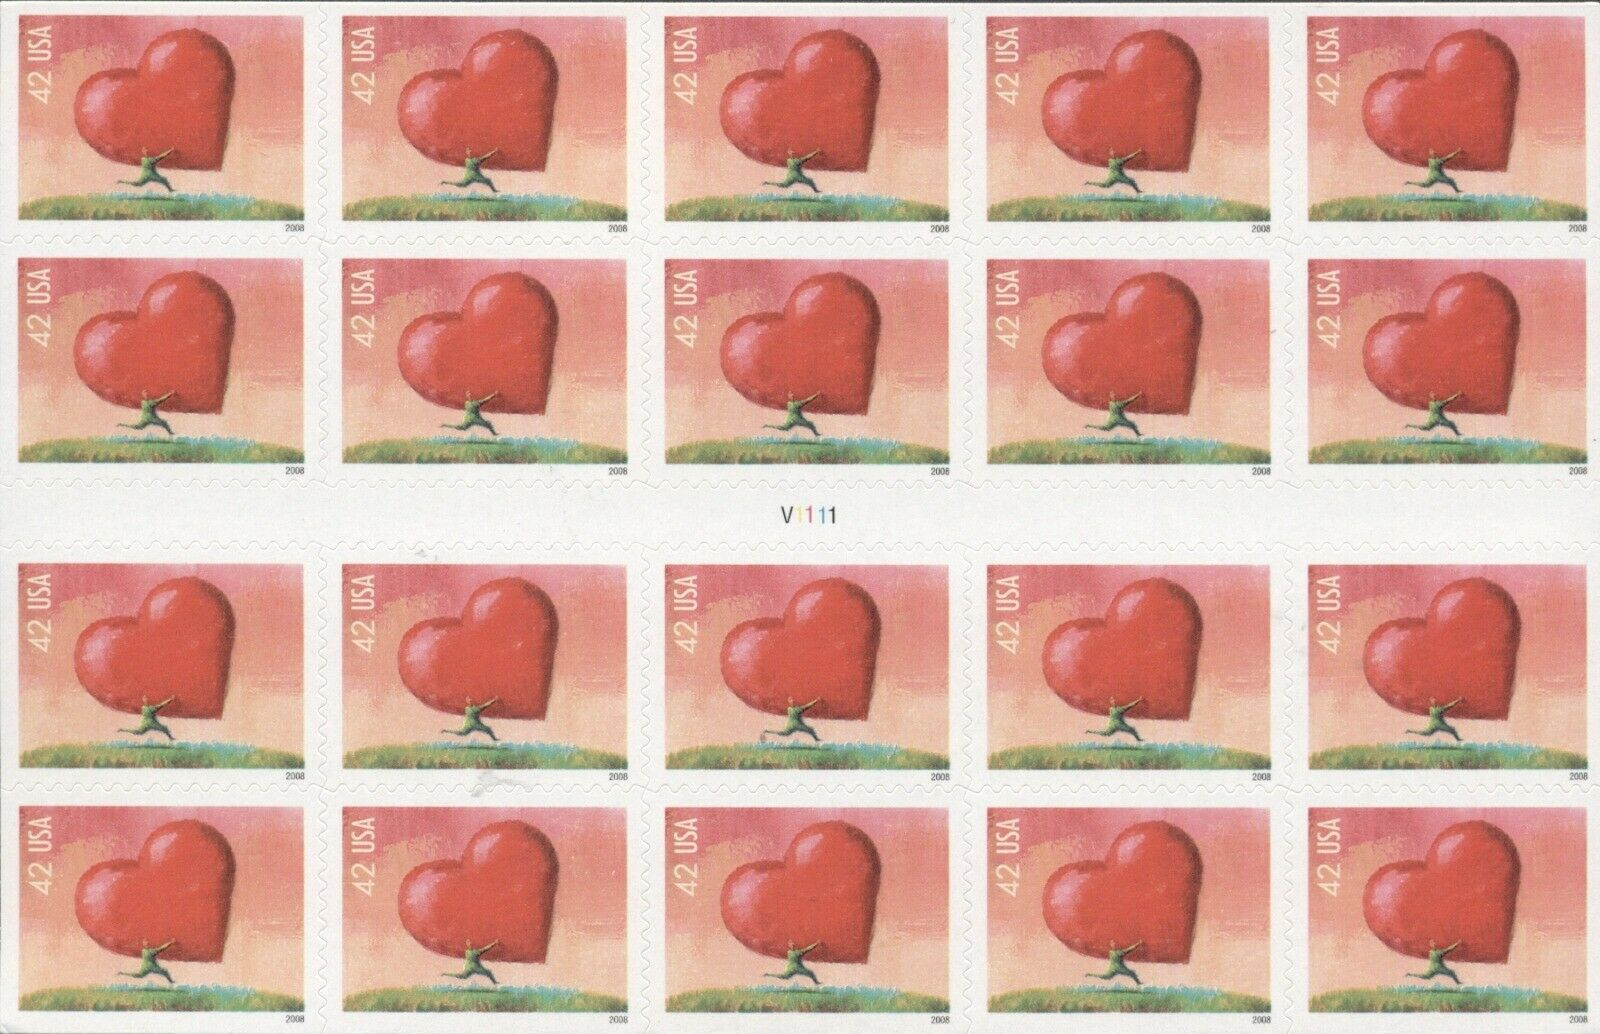 US: 2008 LOVE - ALL HEART; Convertible Booklet Sc 4270; 42 Cents Values